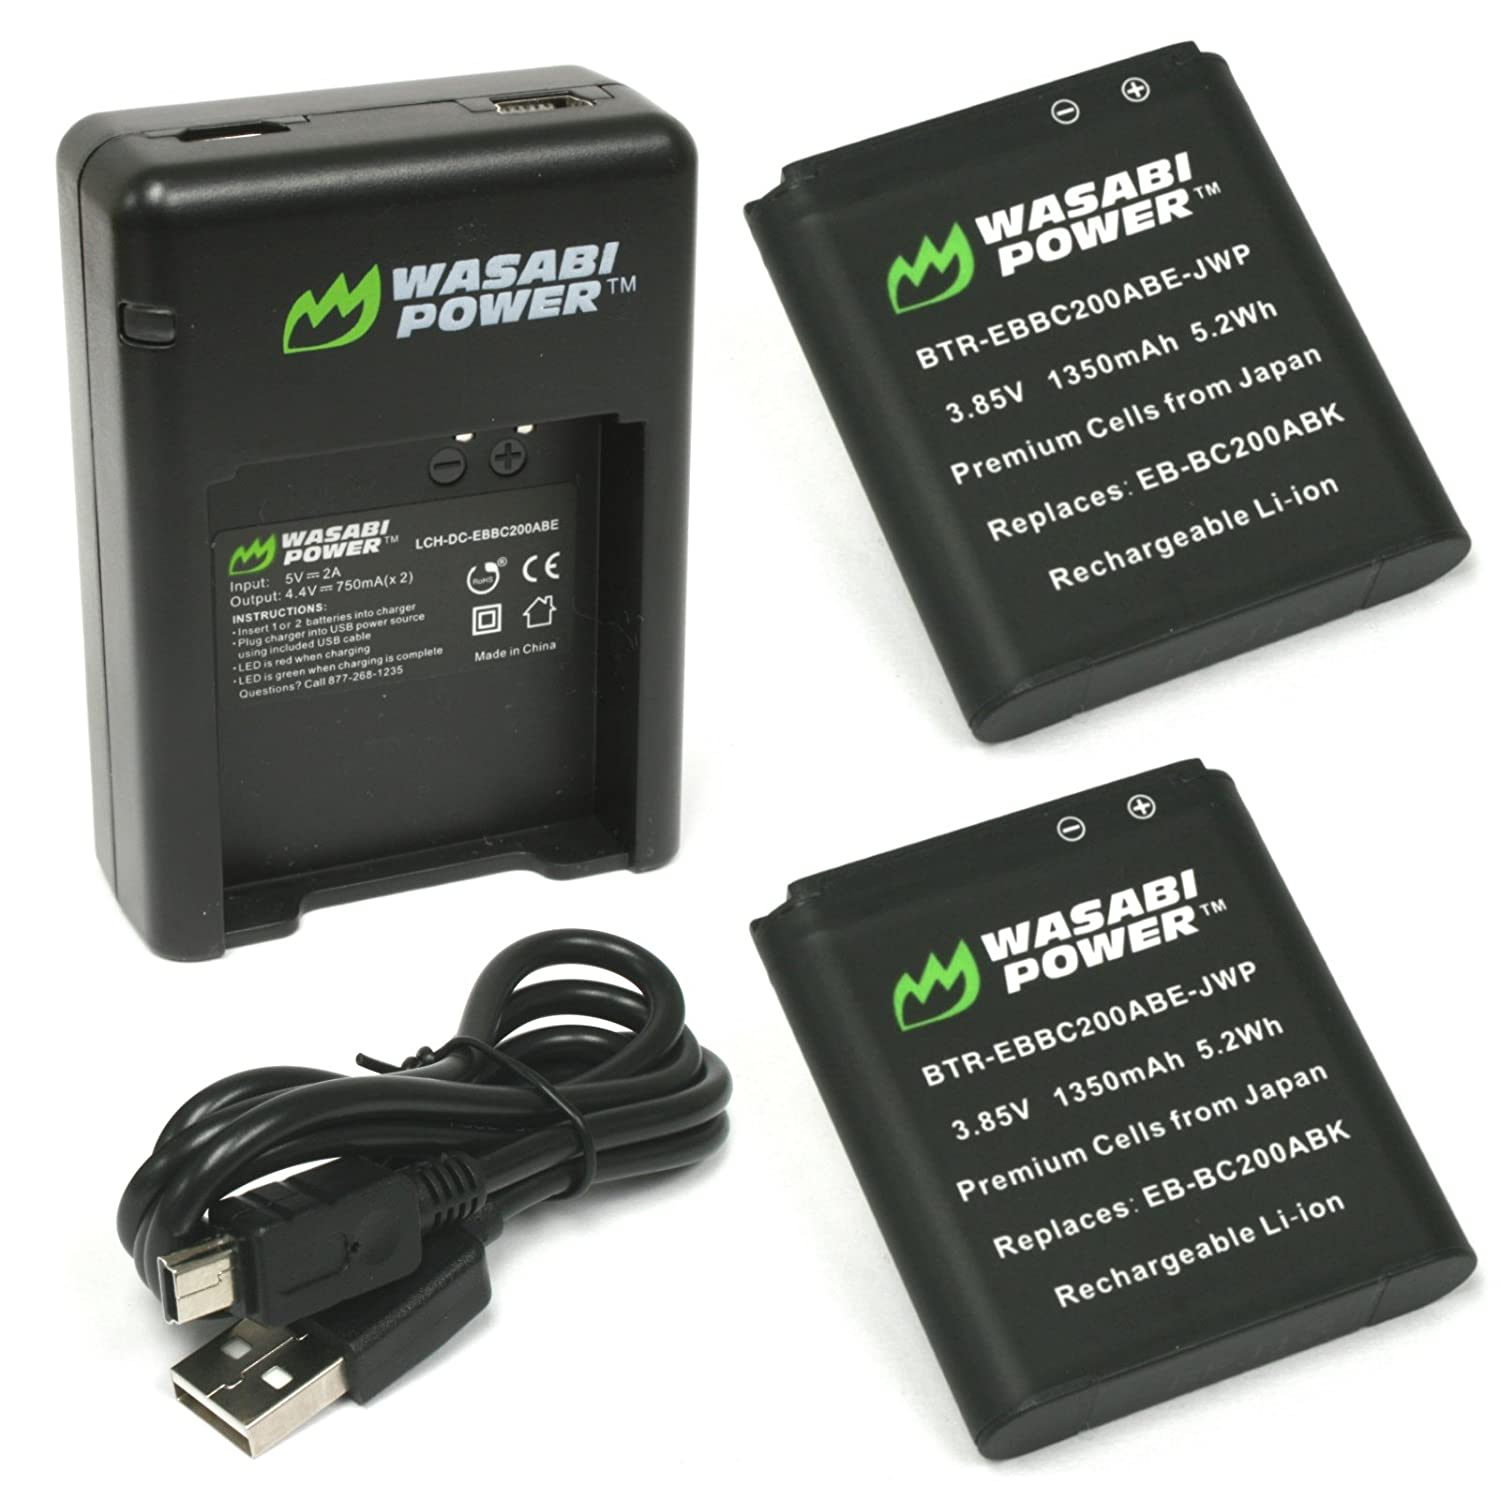 Wasabi Powerバッテリーと充電器for Samsung eb-bc200 2 Batteries + Dual Charger  B01N1QN63X